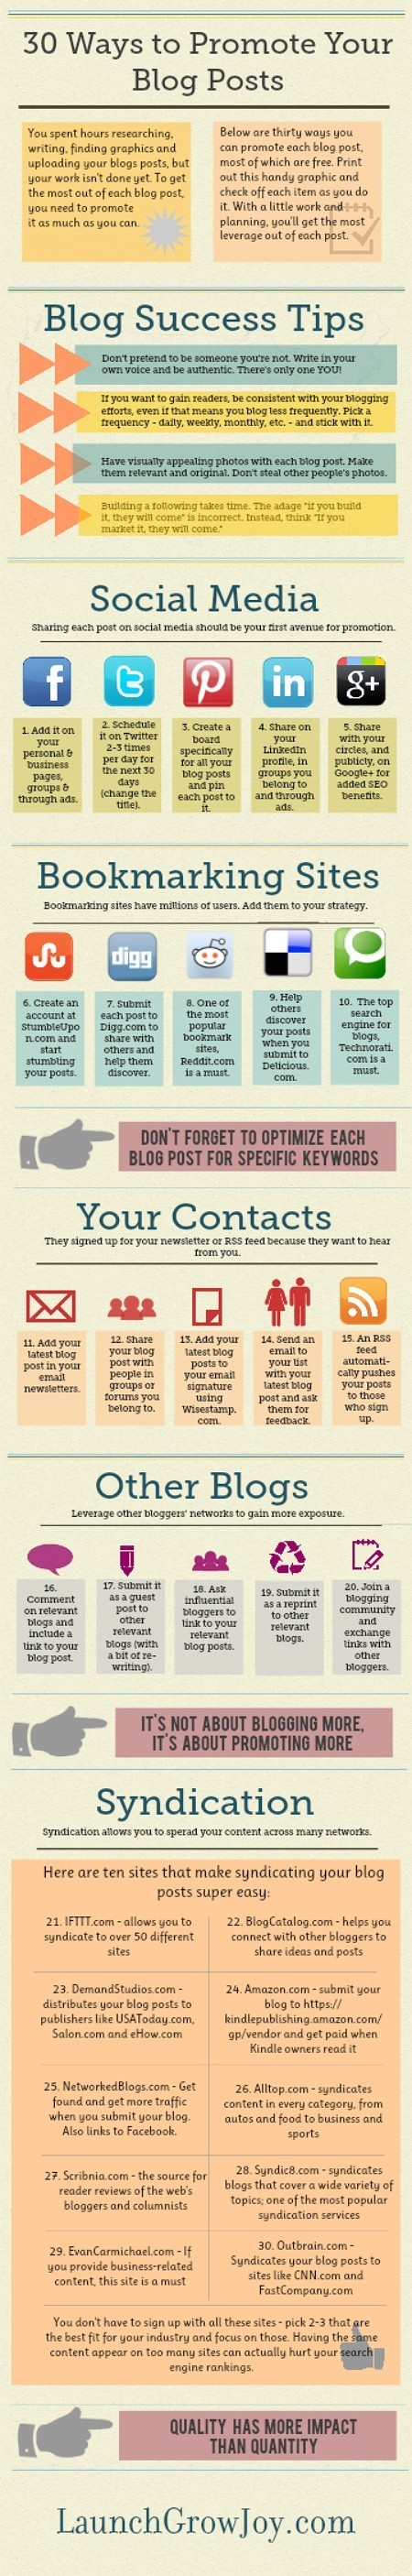 30 ways to promote your blog post [Infographic]   Best Infographics of all time   Scoop.it